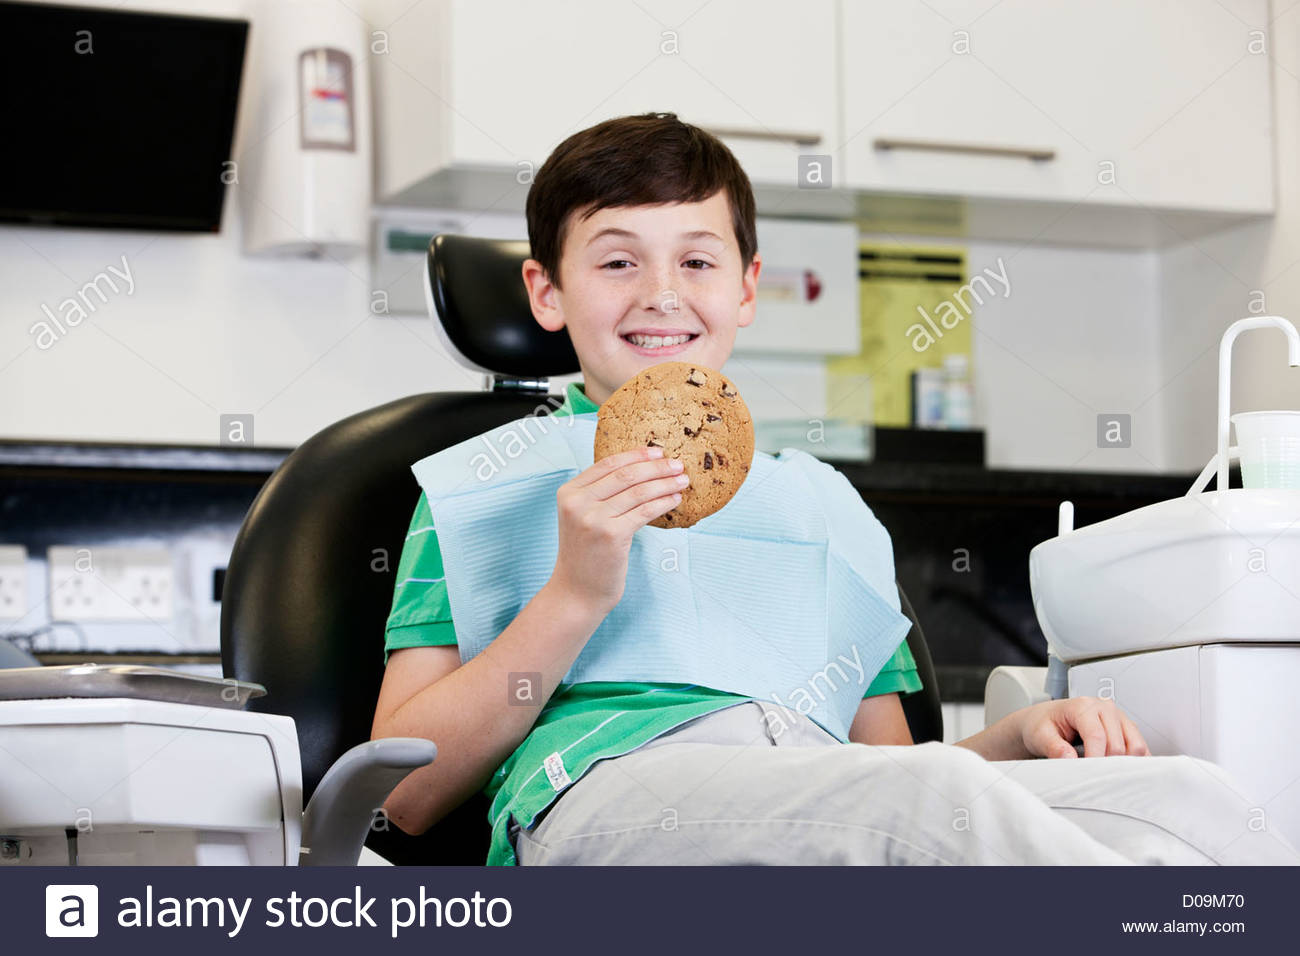 A young boy at the dentist holding a giant cookie - Stock Image